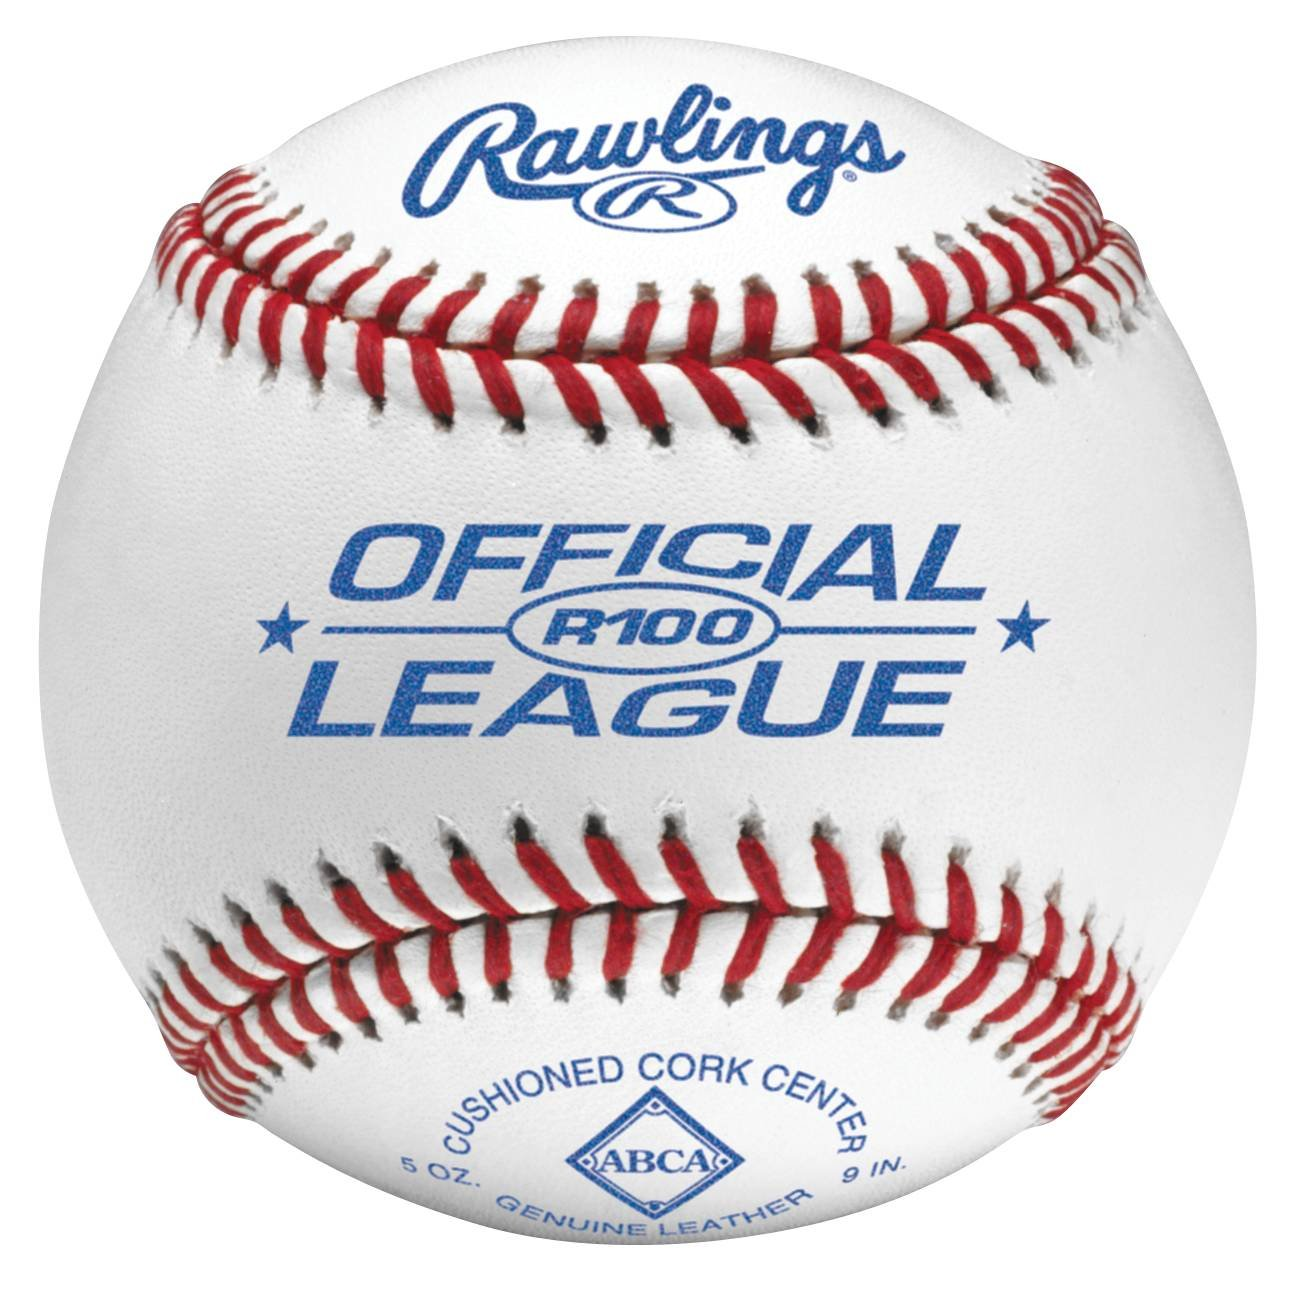 Rawlings ABCA Stamped Official League Baseball, Pack of 12 R100